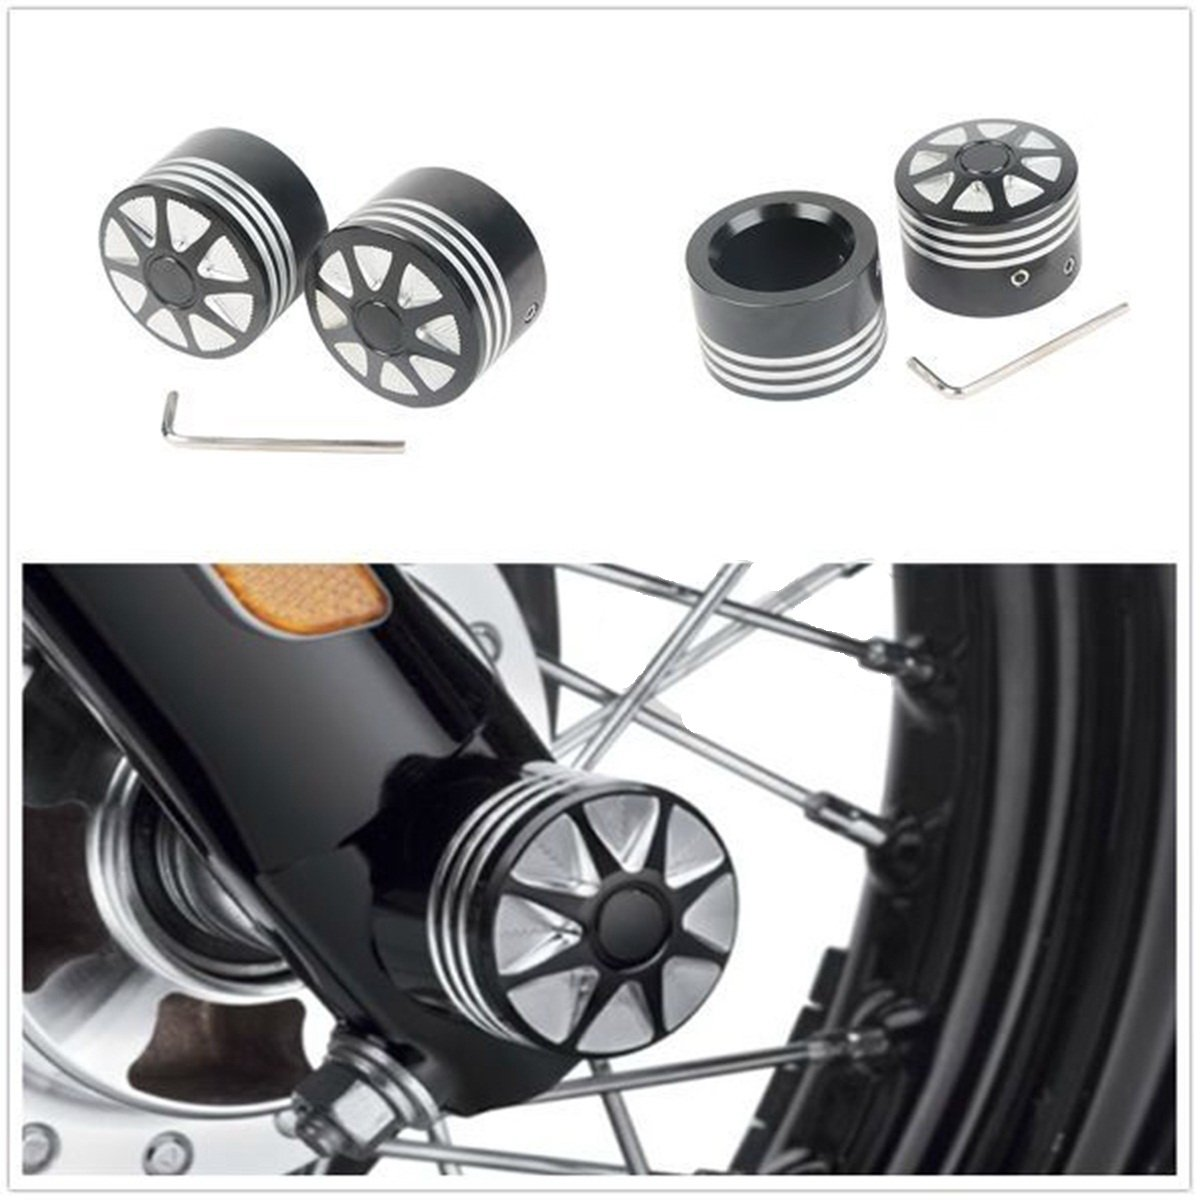 Black Front Axle Nut Cover Bolt For Harley Touring Softail Road King Glide FLTR